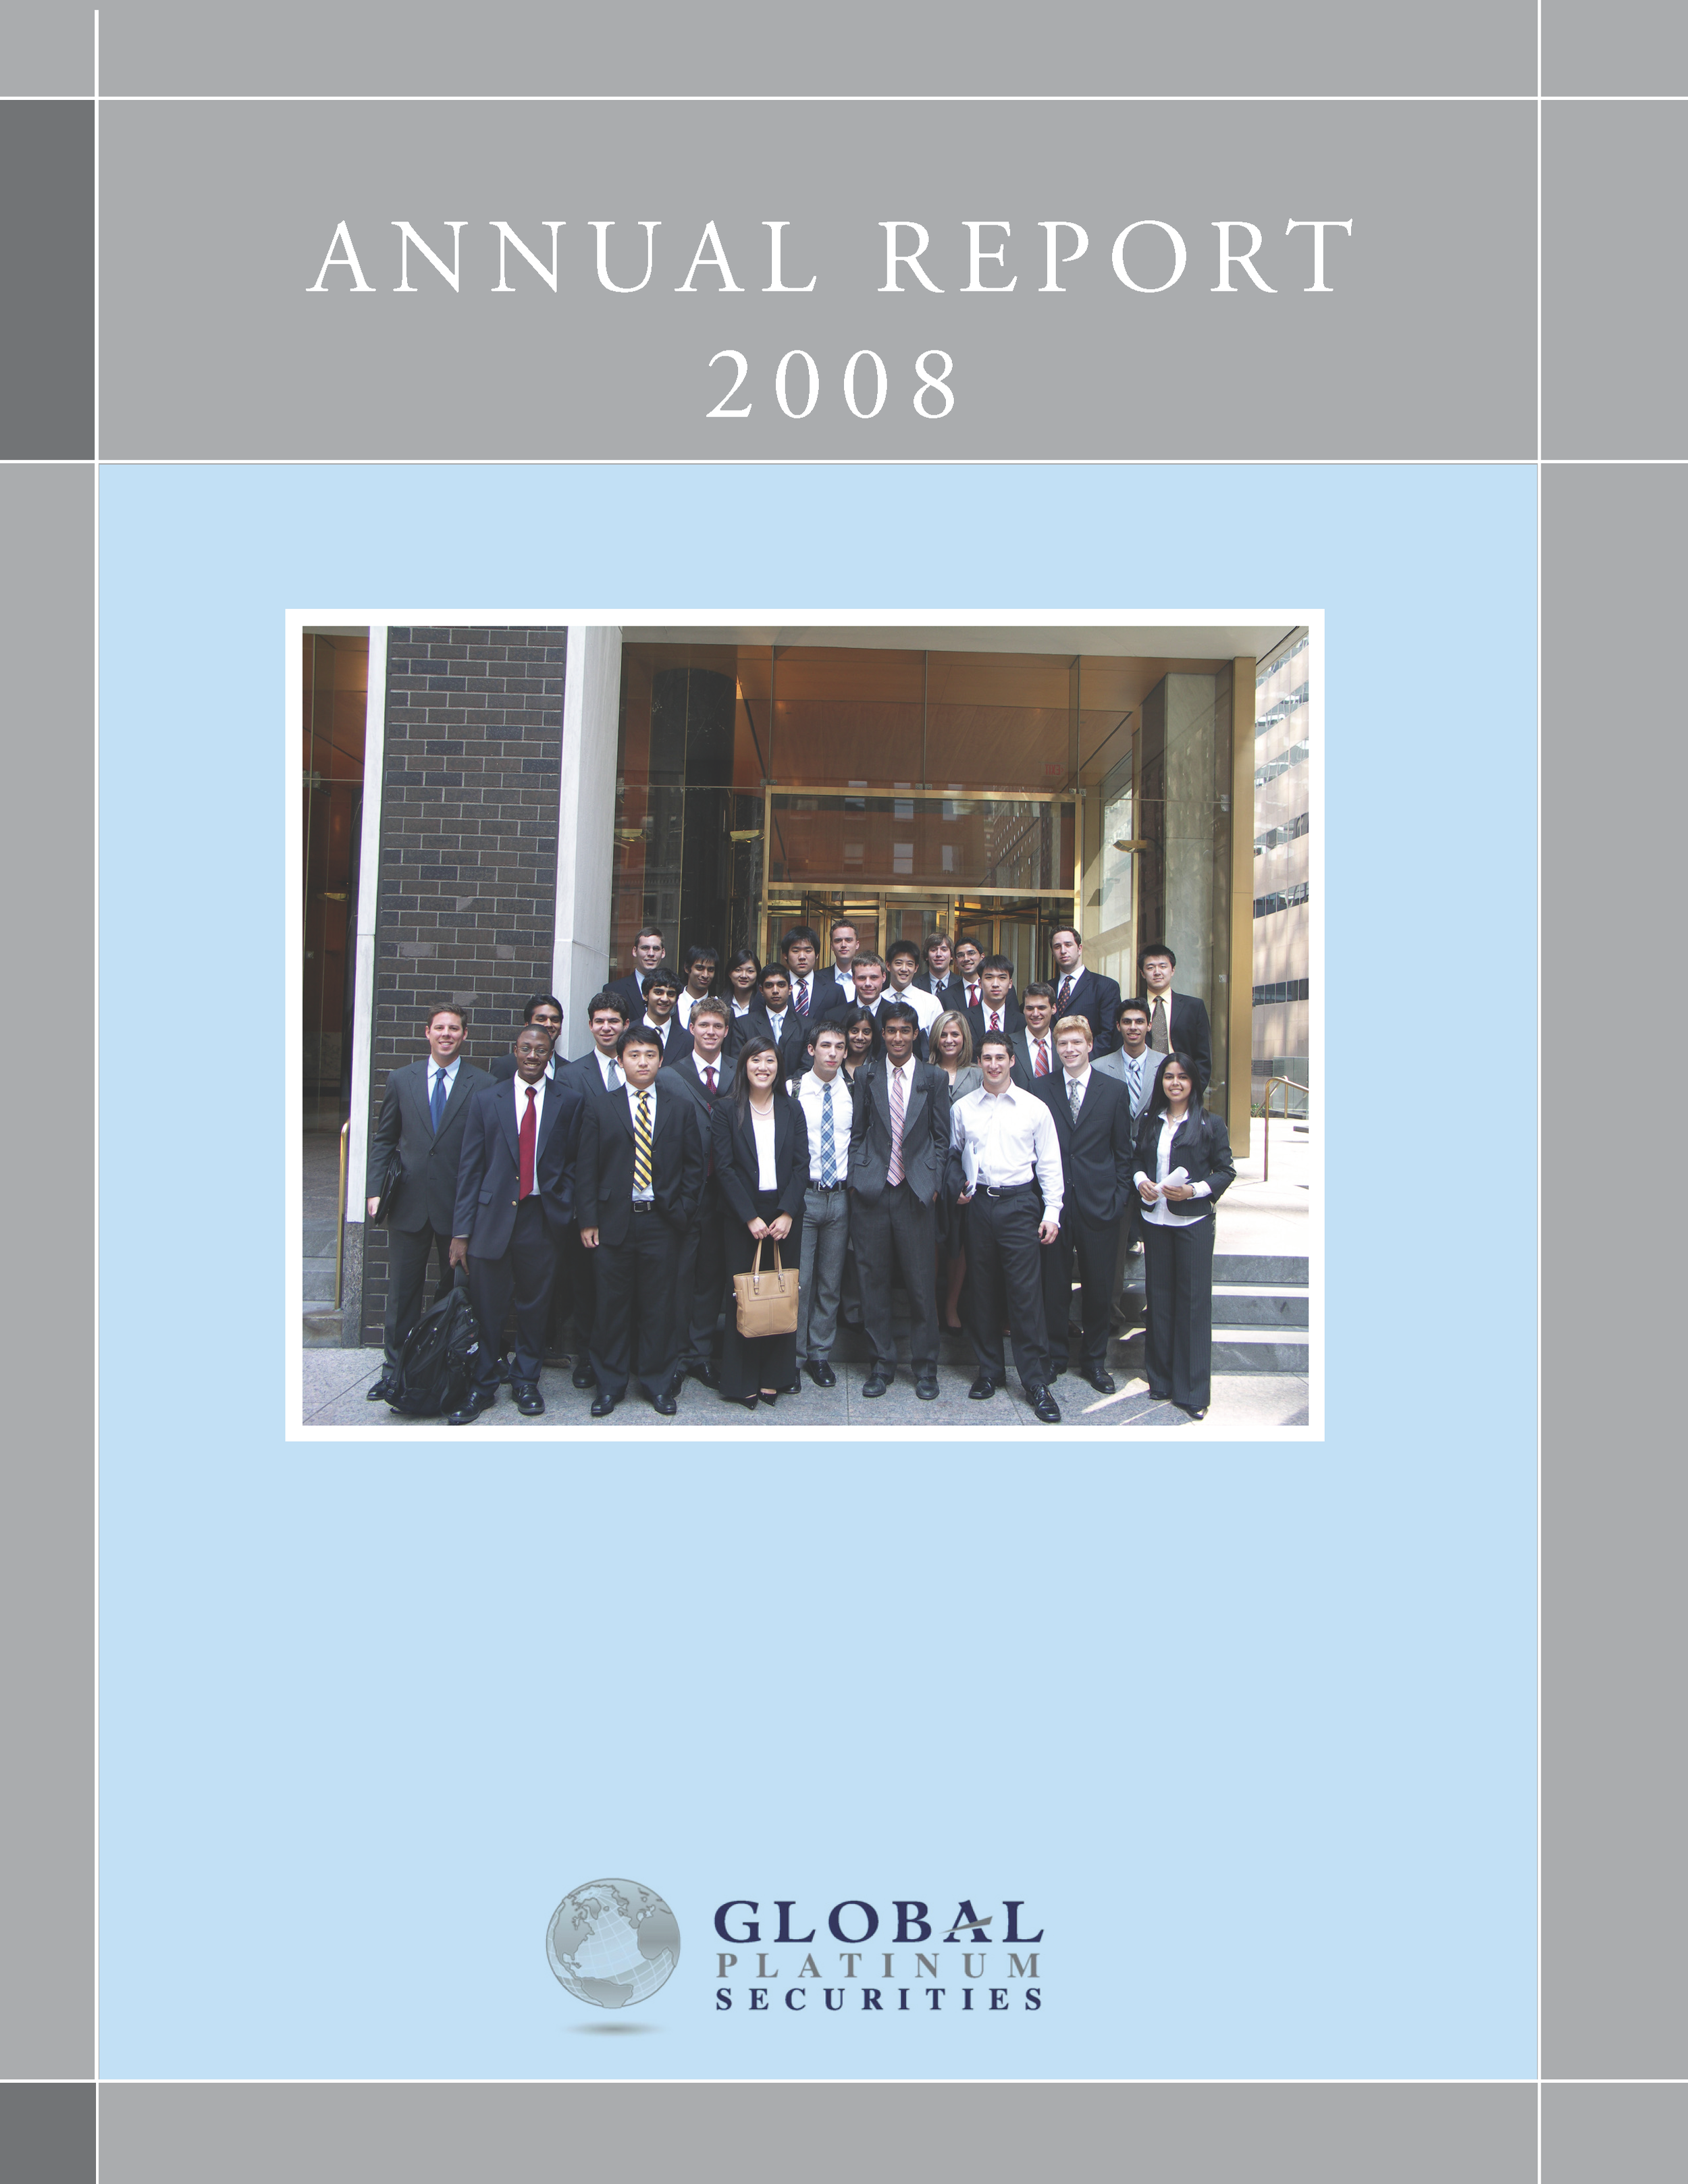 Annual+Report+2008_Page_01.png